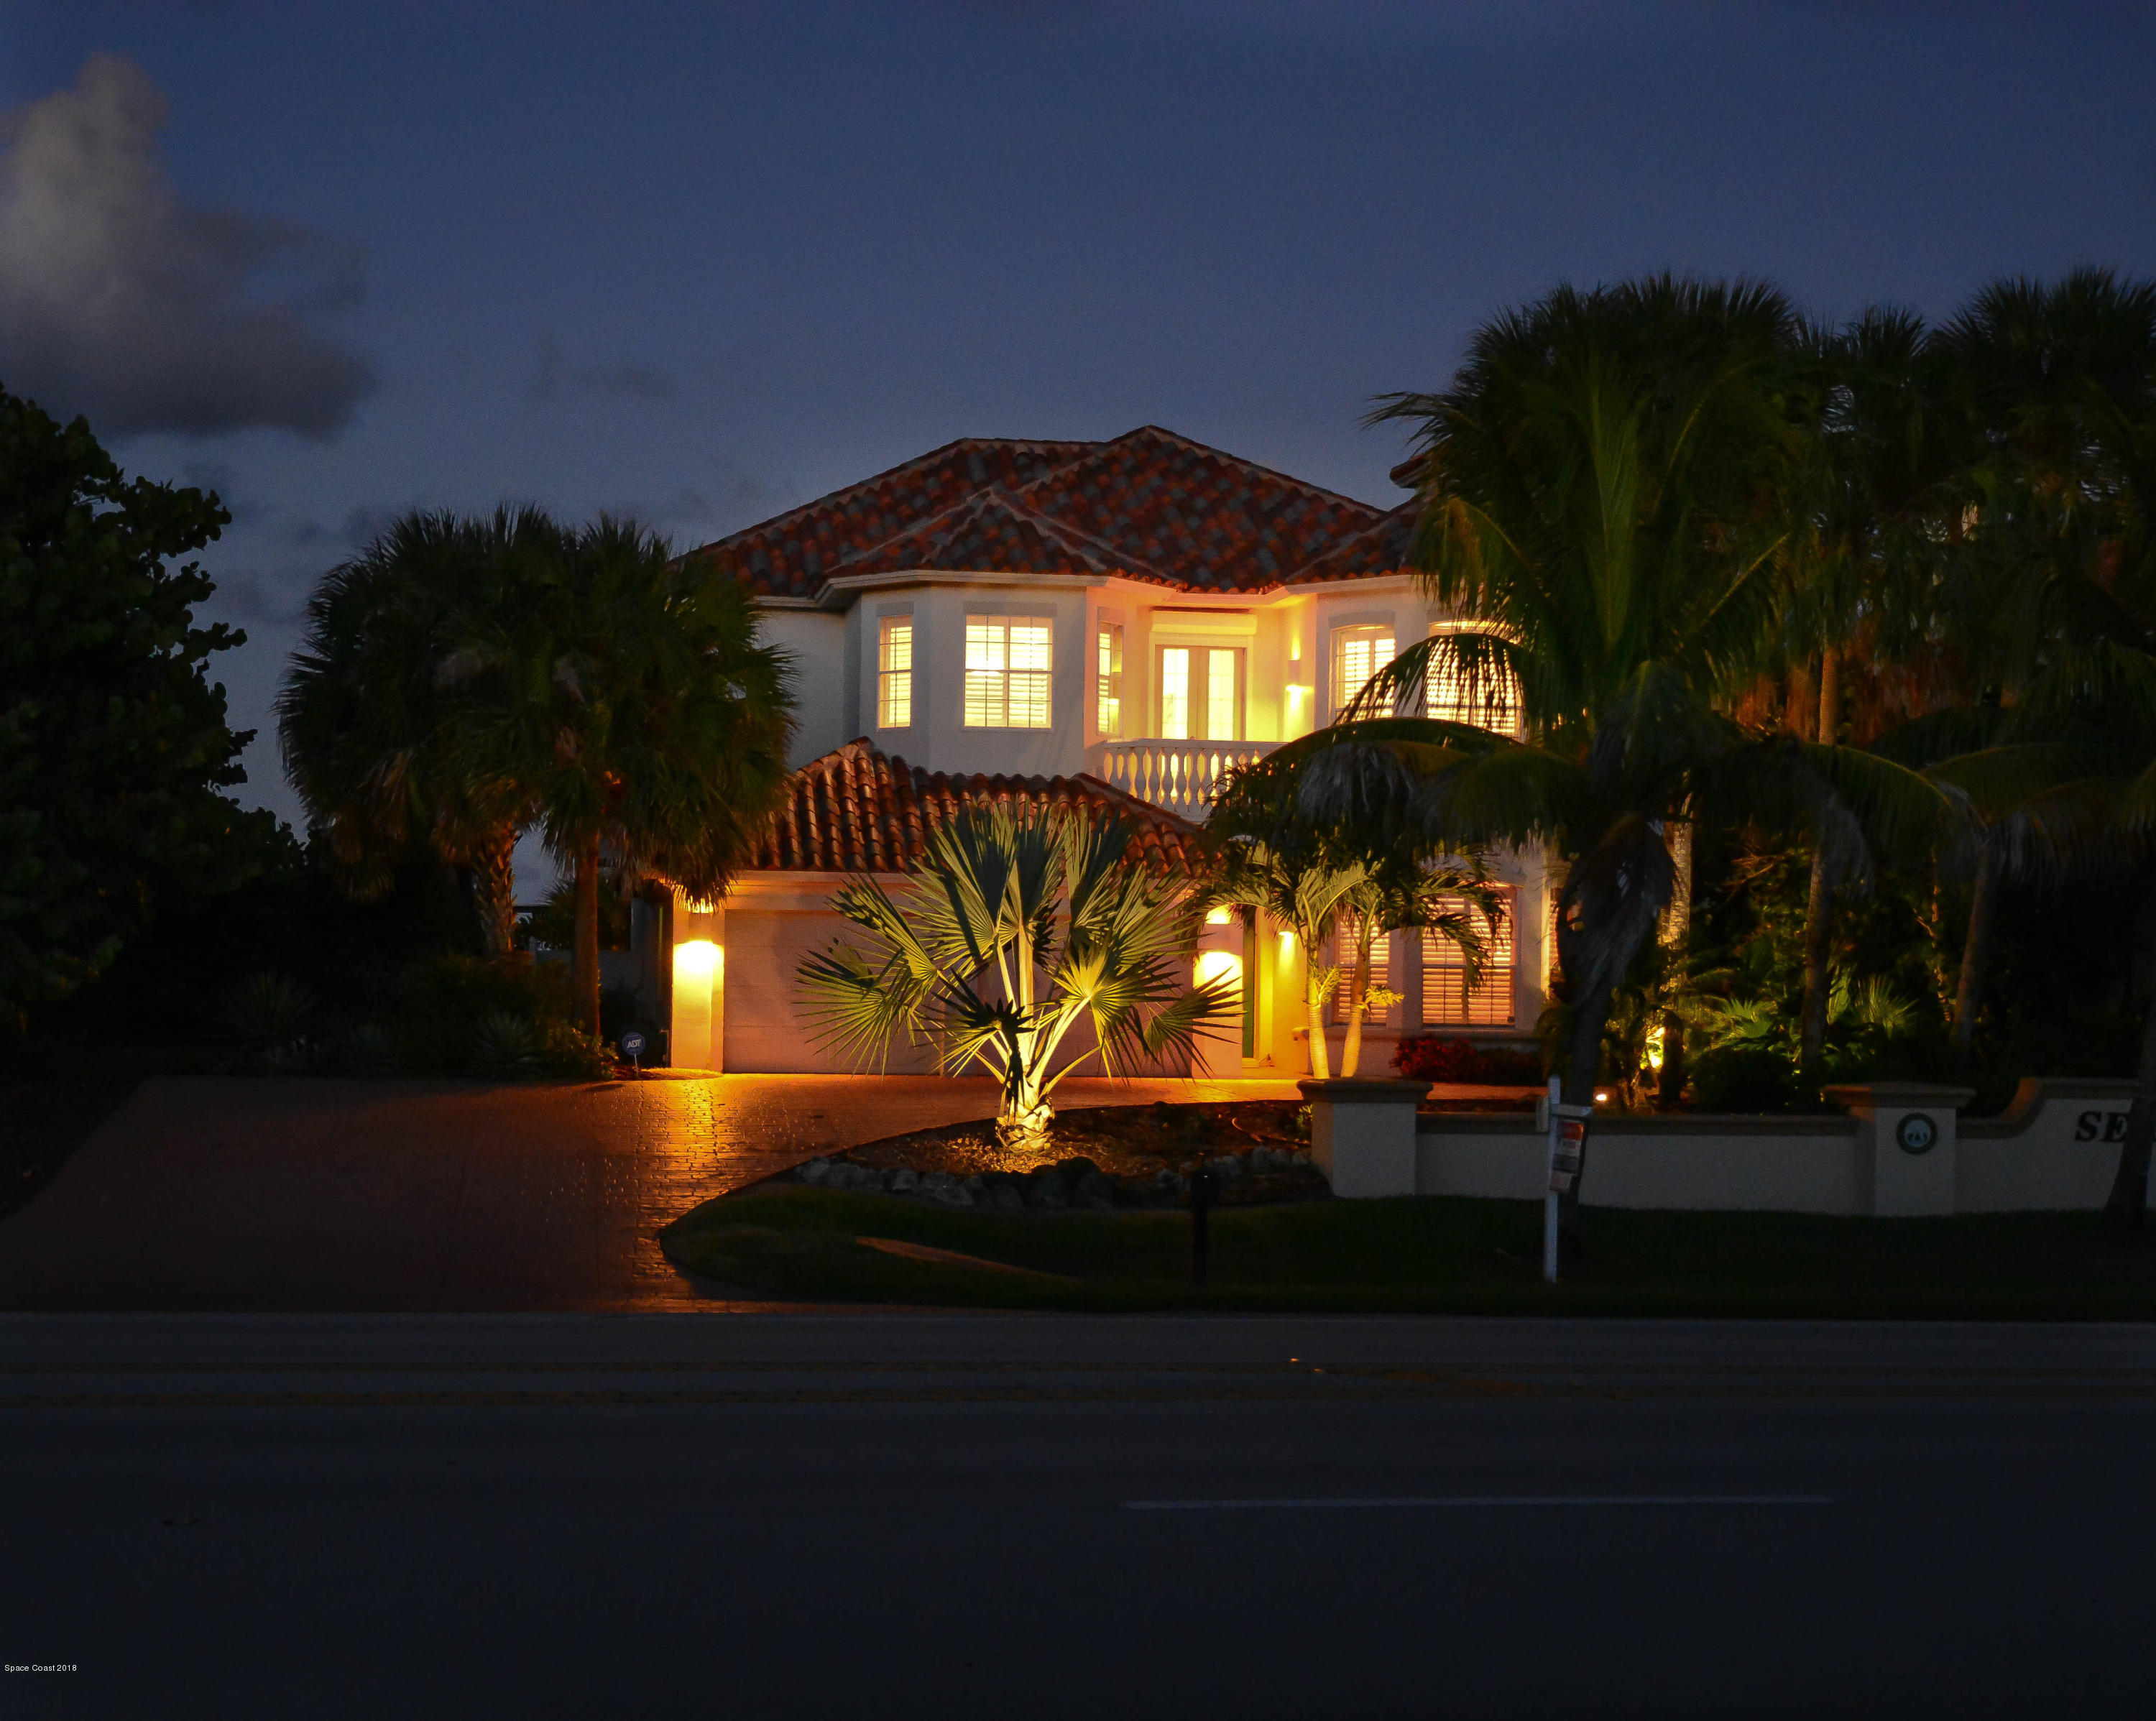 Single Family Home for Sale at 7575 S Highway A1a 7575 S Highway A1a Melbourne Beach, Florida 32951 United States